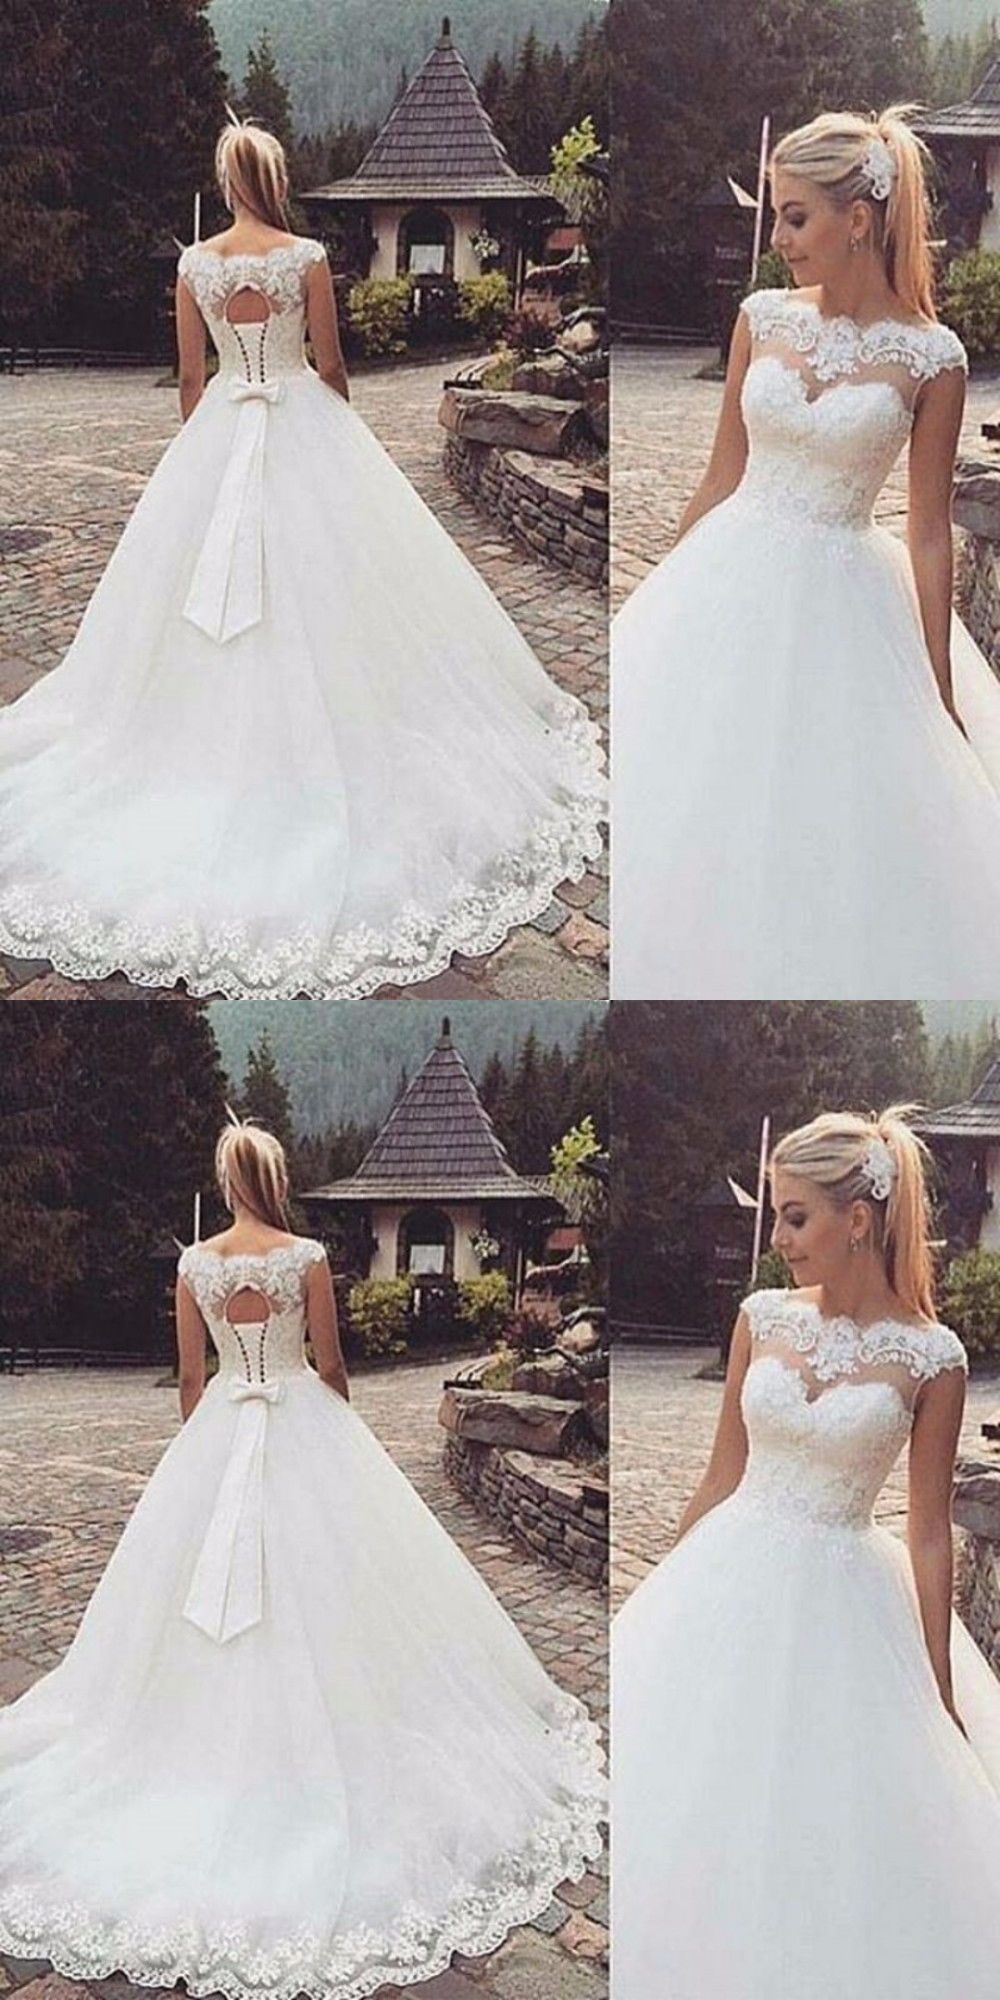 Wedding dresses new whiteivory wedding dress bridal gown custom